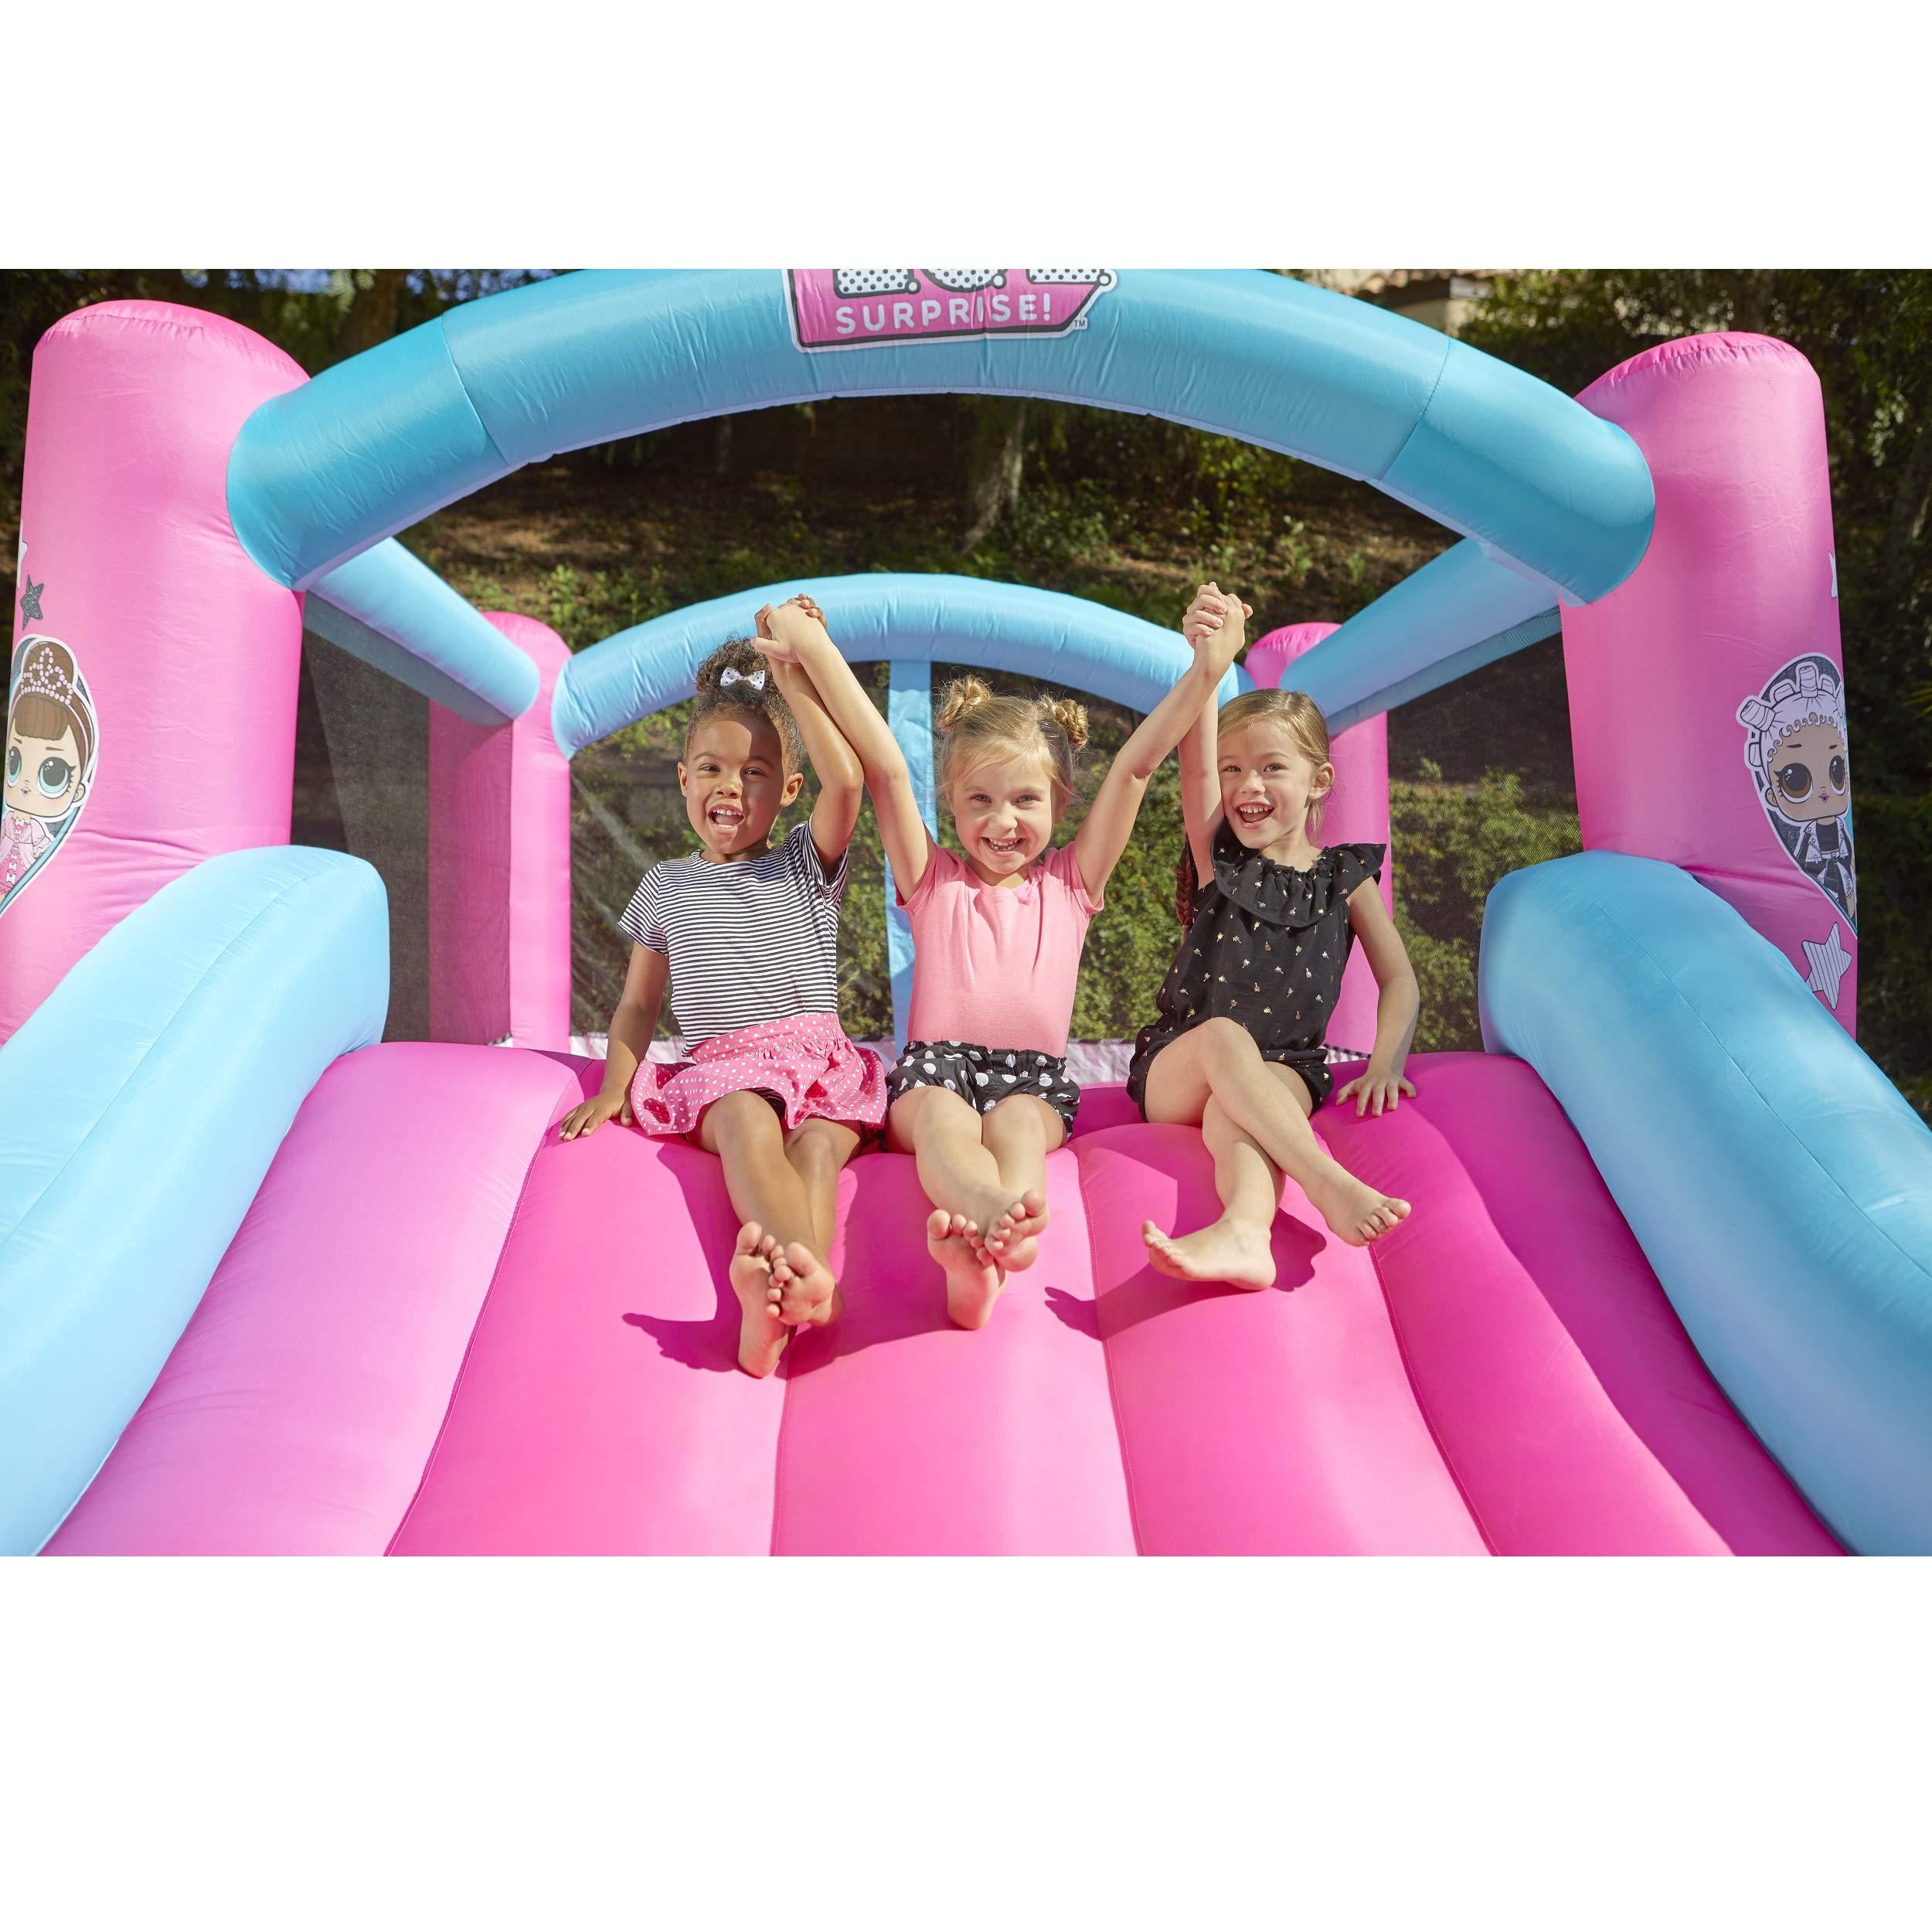 L.O.L. Surprise Jump 'n Slide Inflatable Bounce House with Blower by Little Tikes (Image #5)